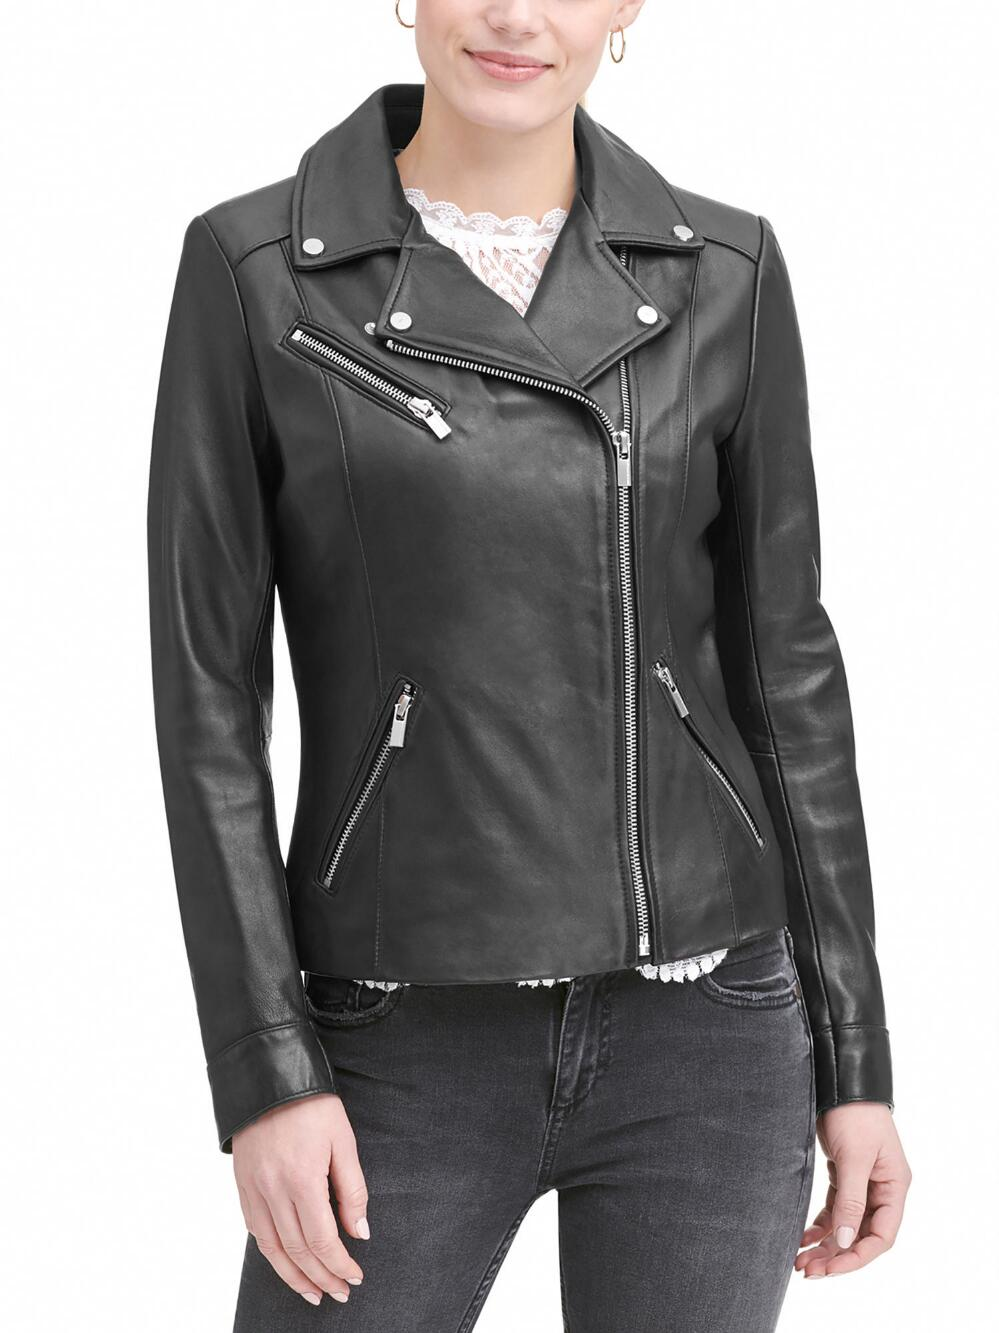 Wilson leather jacket for women